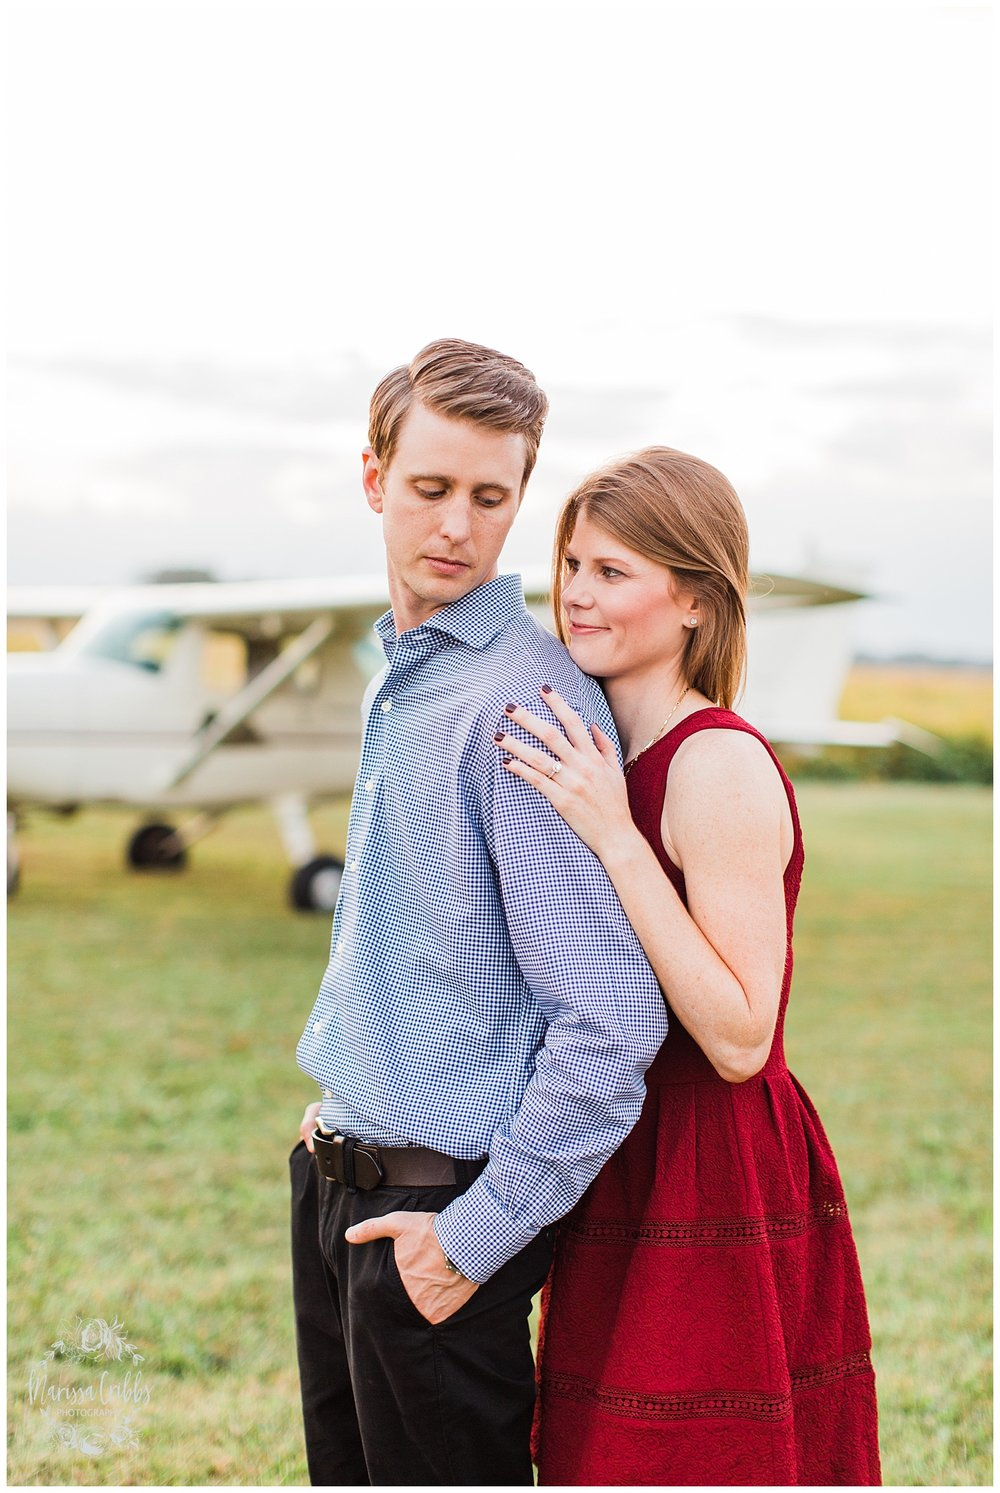 KELLY & BEN ENGAGED | MARISSA CRIBBS PHOTOGRAPHY_3151.jpg